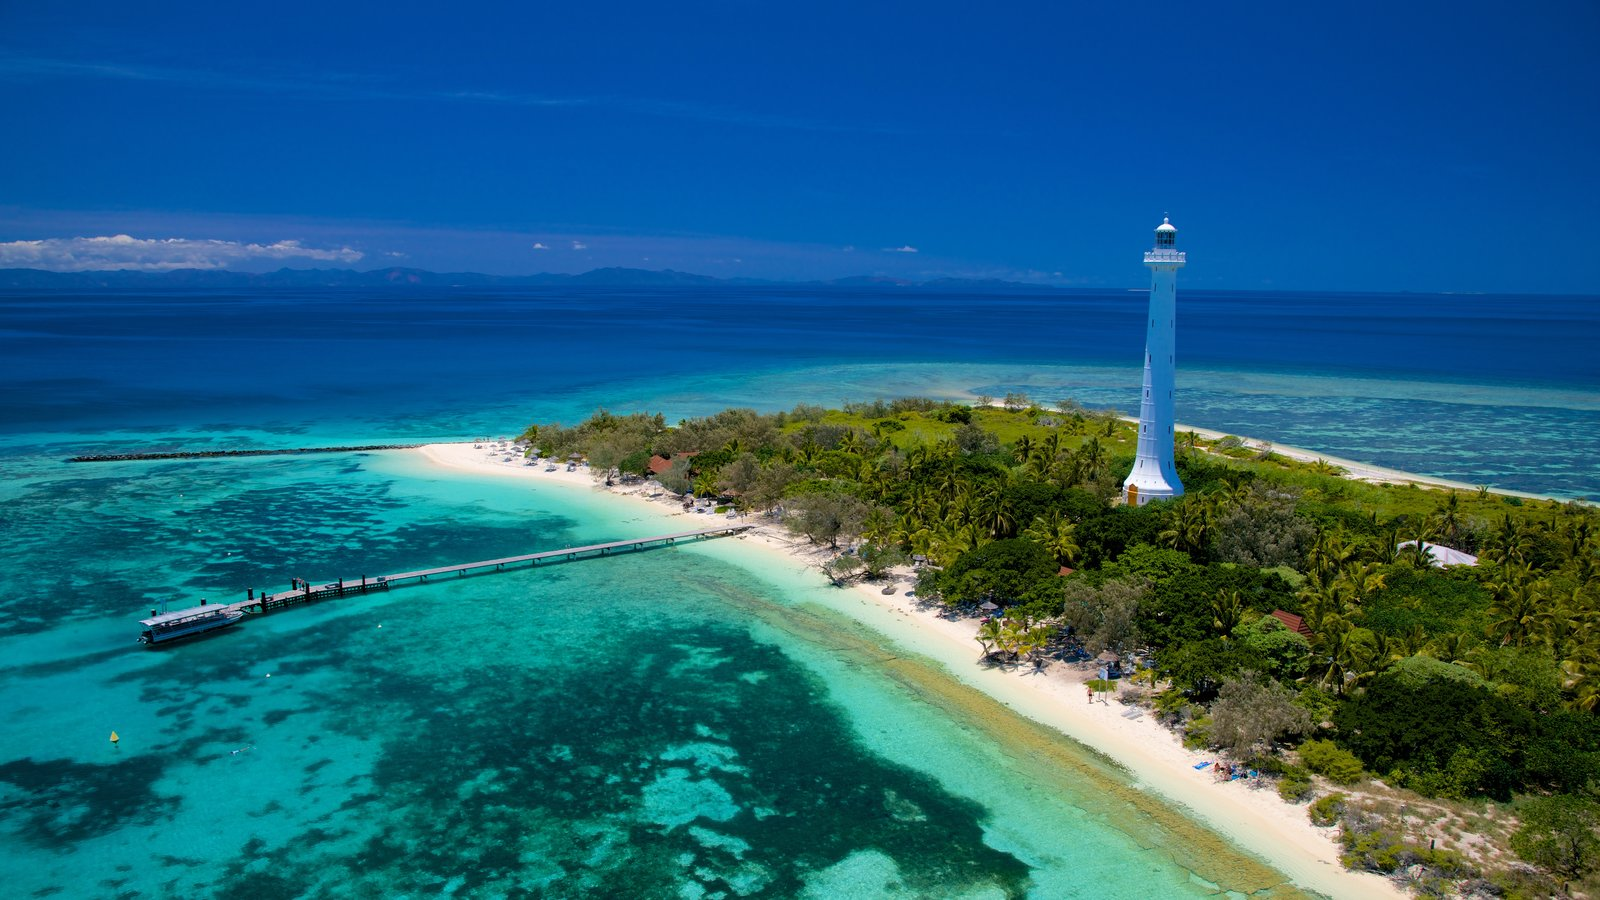 Noumea which includes island images, landscape views and general coastal views